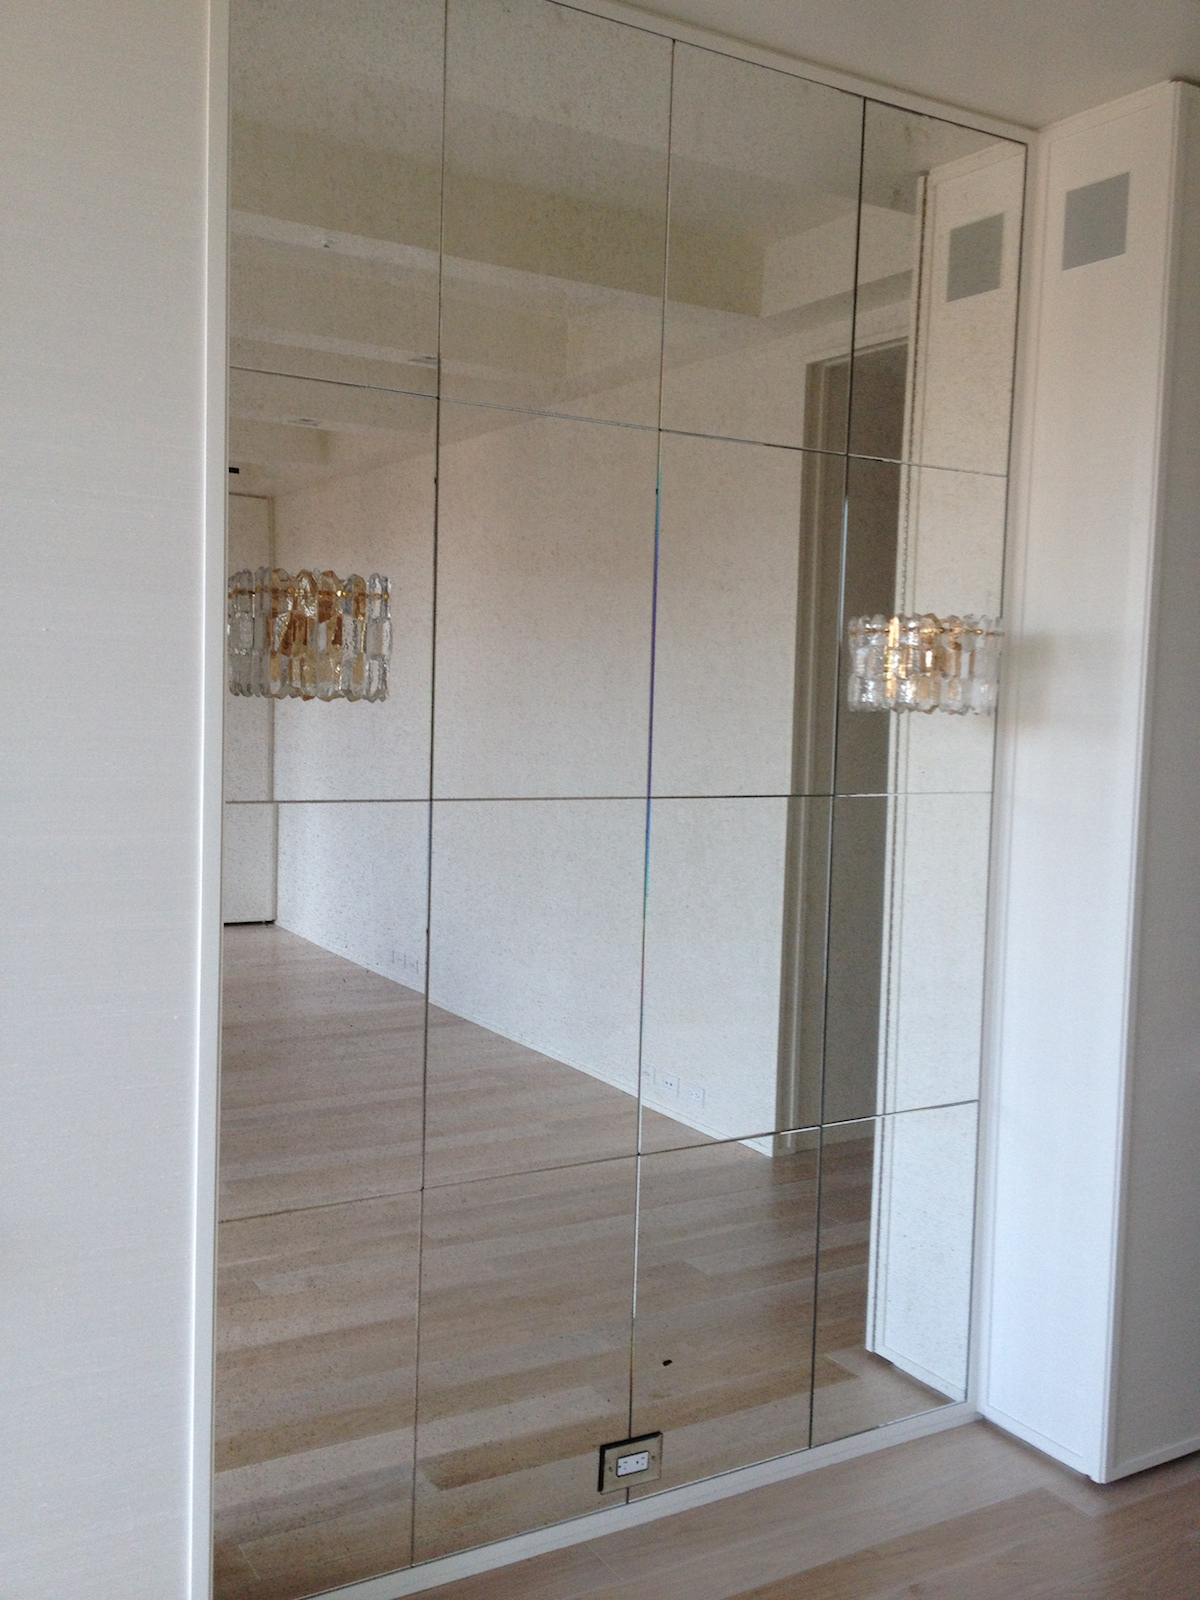 install wall mirrors without damaging your apartment walls centreville va